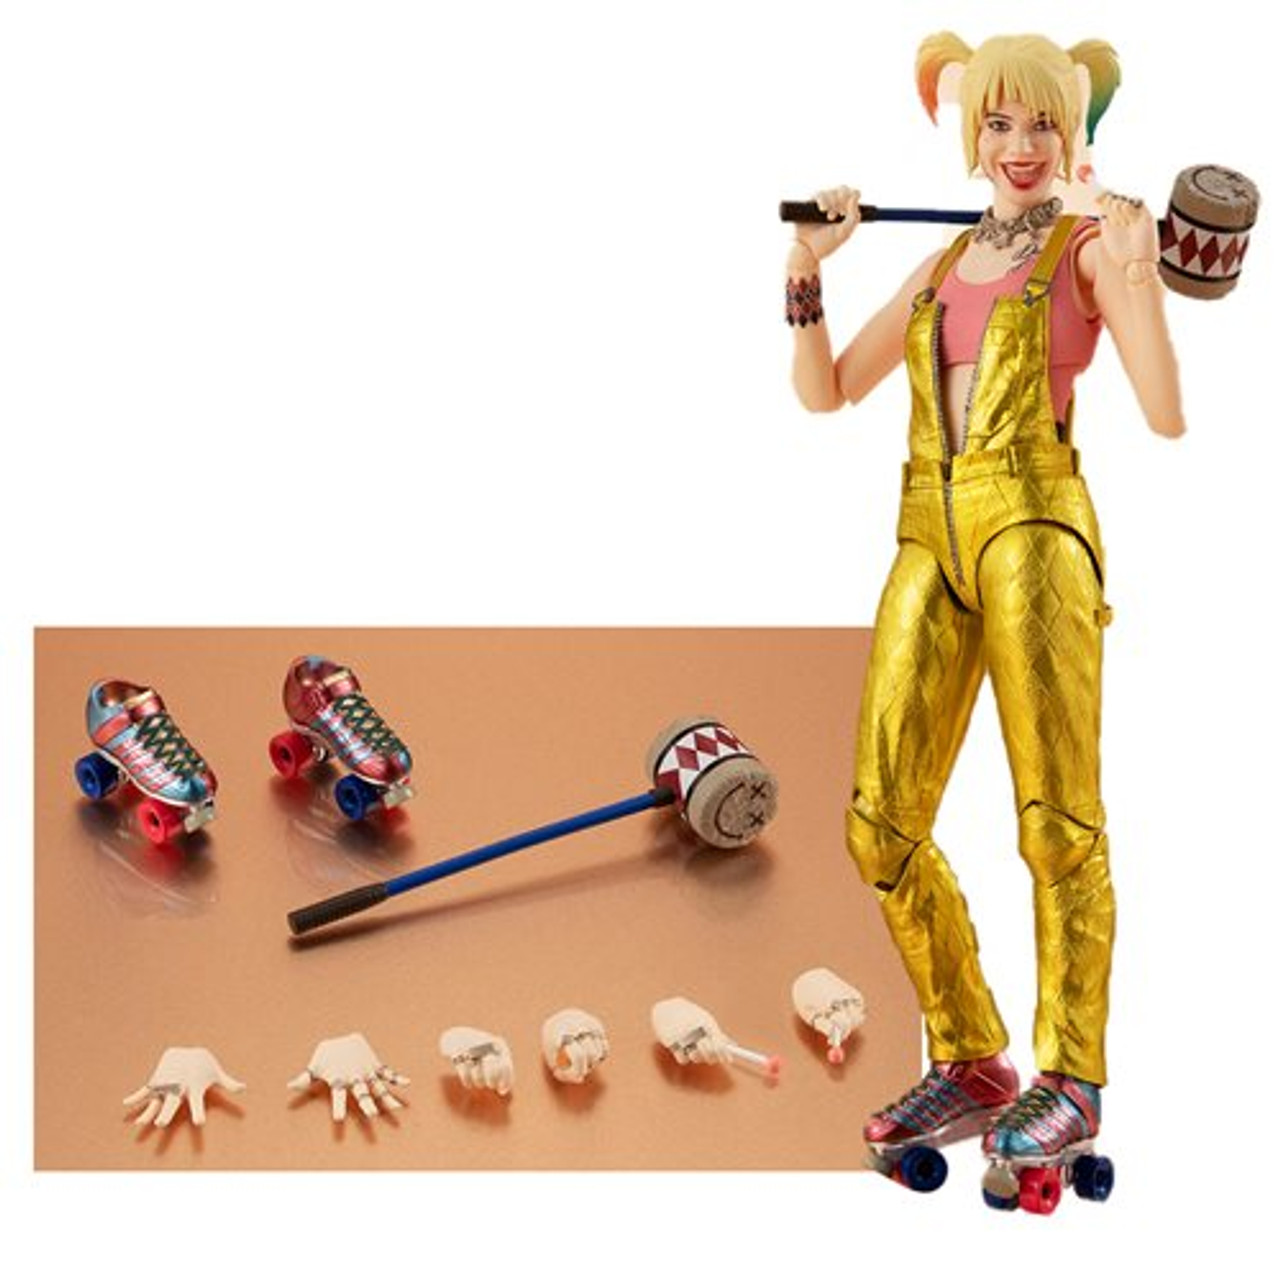 Birds Of Prey And The Fantabulous Emancipation Of One Harley Quinn Harley Quinn Sh Figuarts Action Figure Mikescomicsnstuff